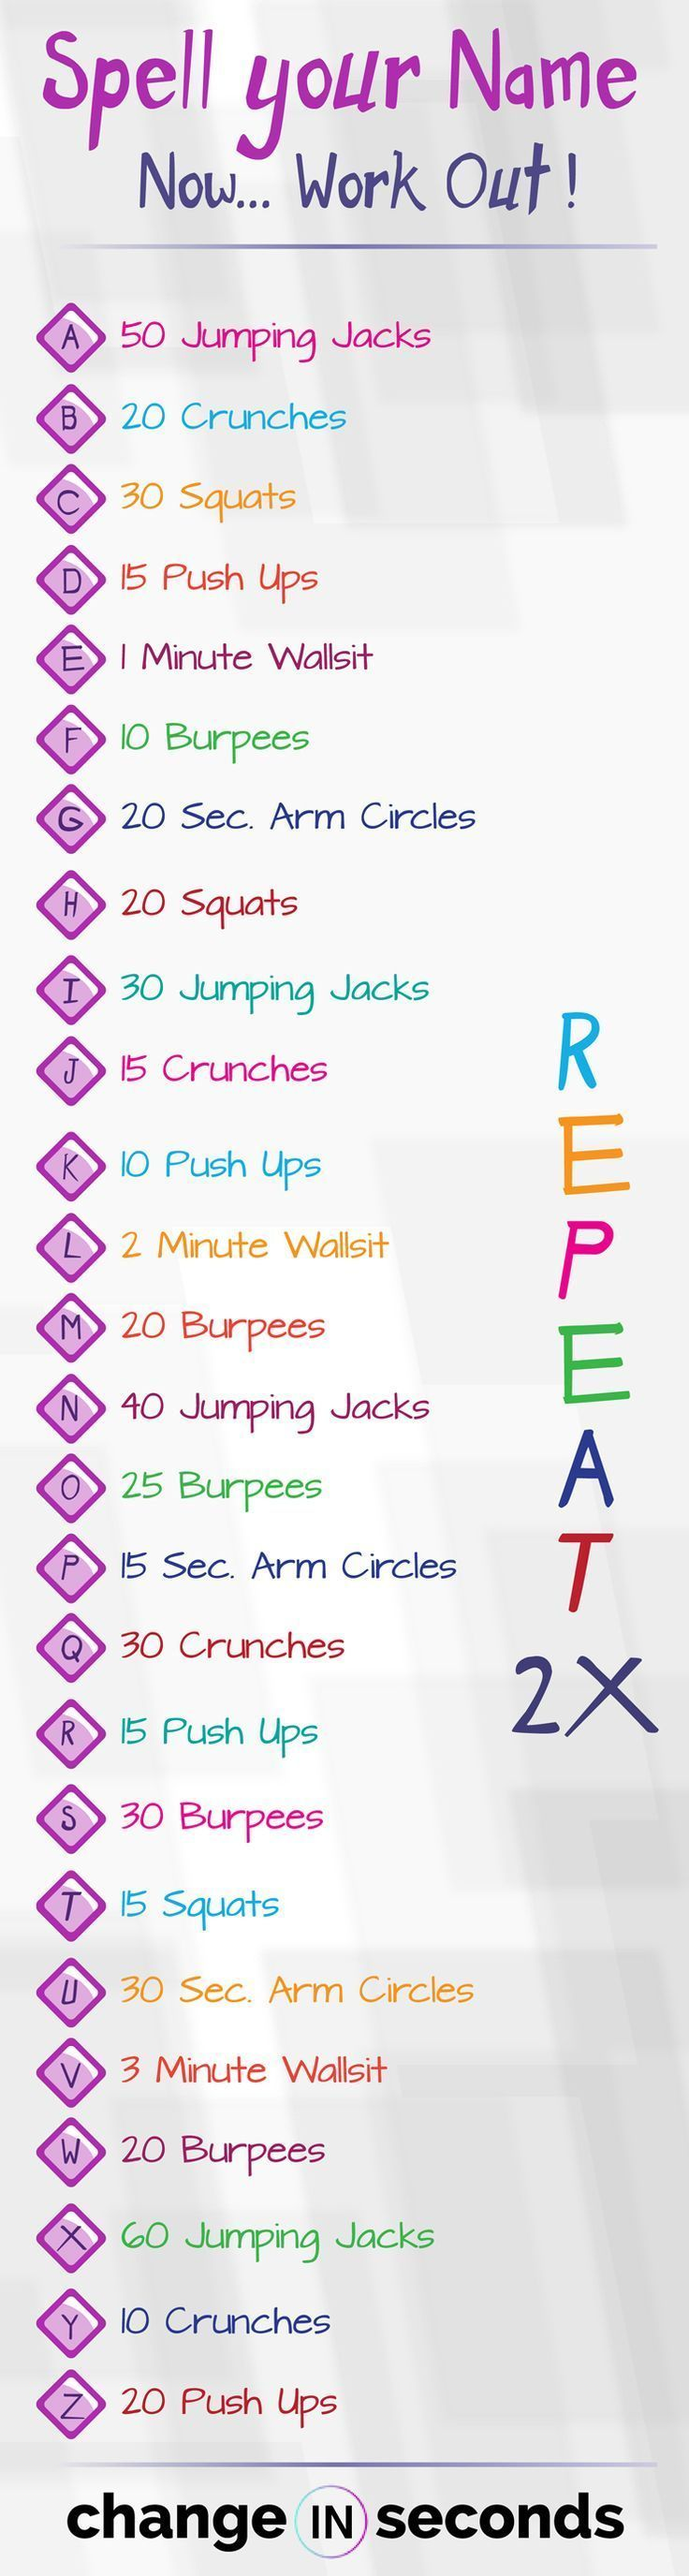 Spell Your Name Workout - get in shape quickly (download PDF Spell Your Name Workout - get in shape quickly (download PDF,